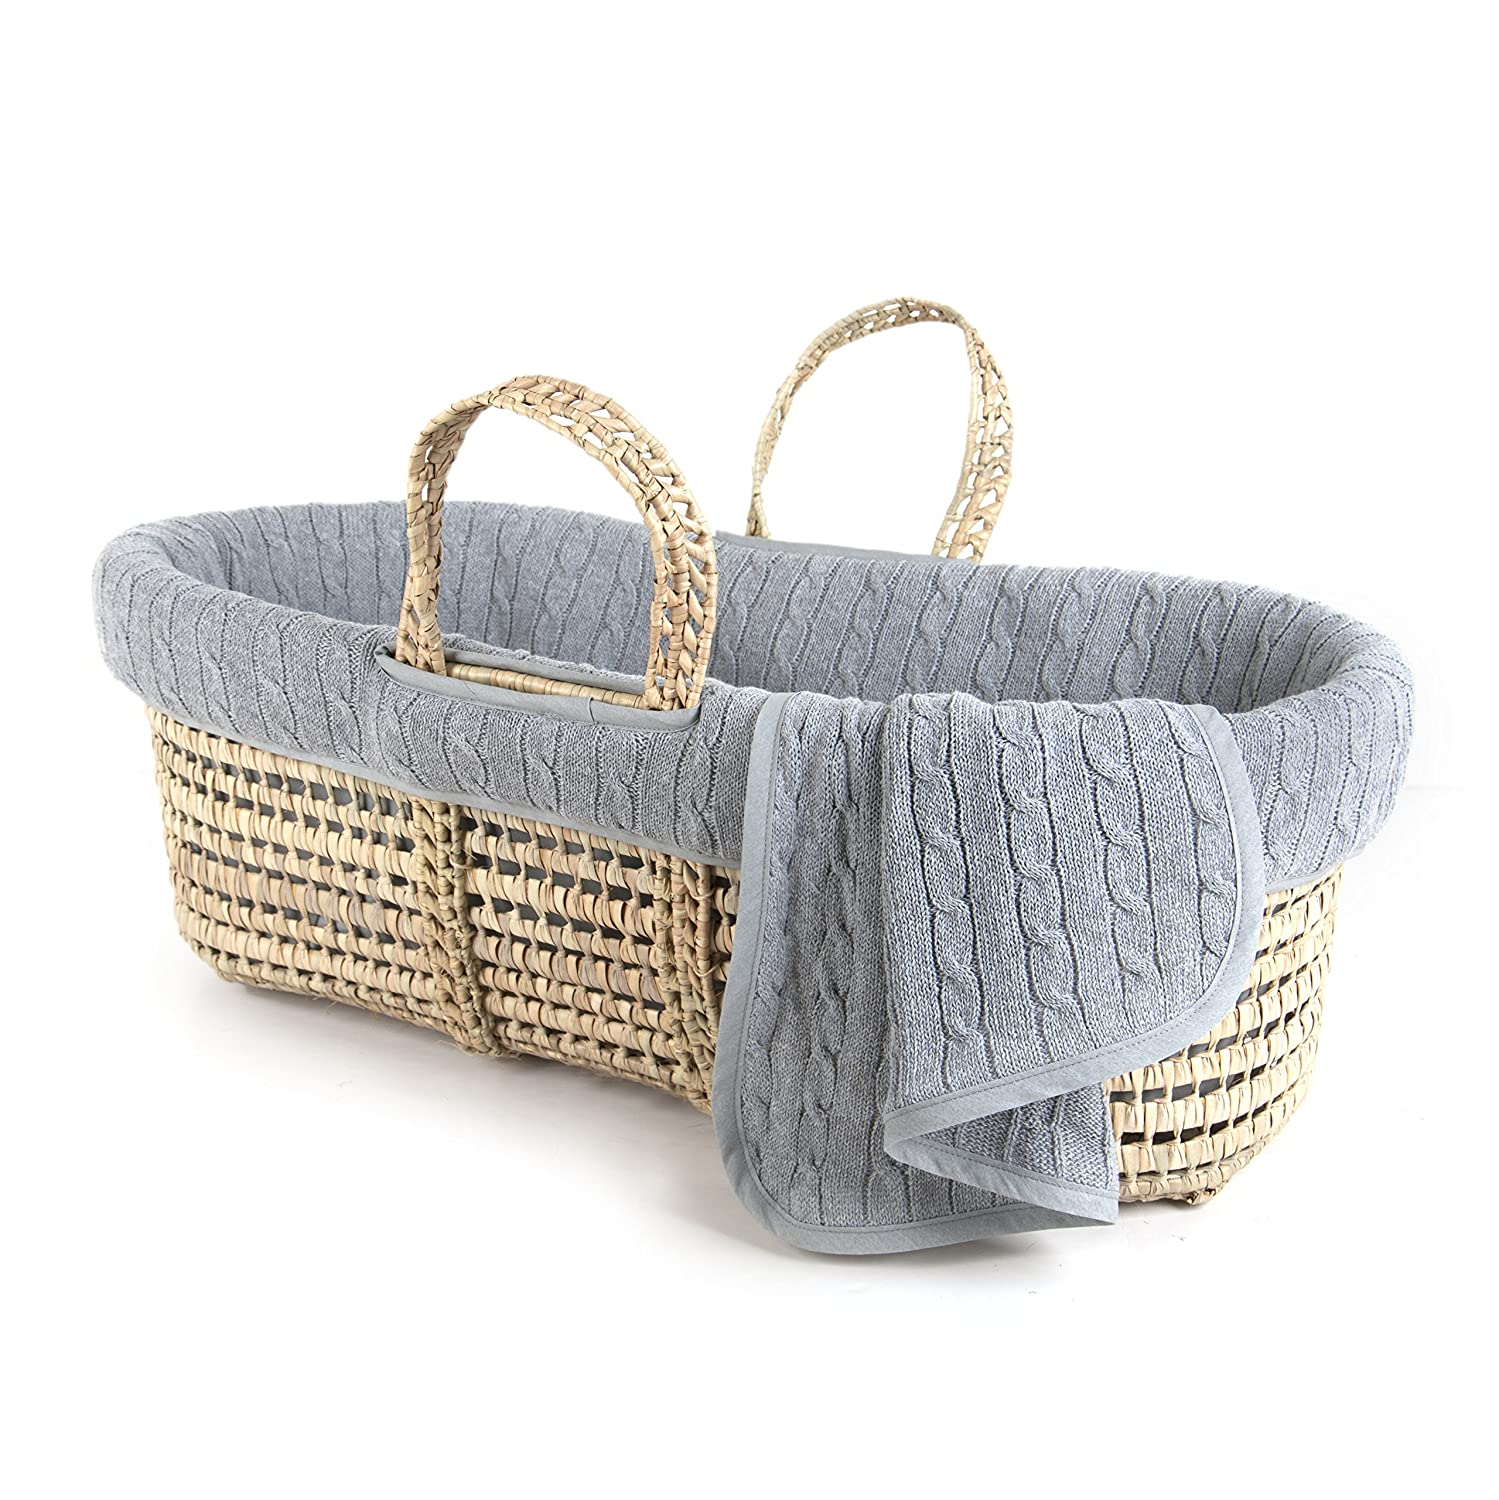 White Sleeping Partners Int/'l MBSTKT009 Tadpoles Cable Knit Moses Basket and Bedding Set